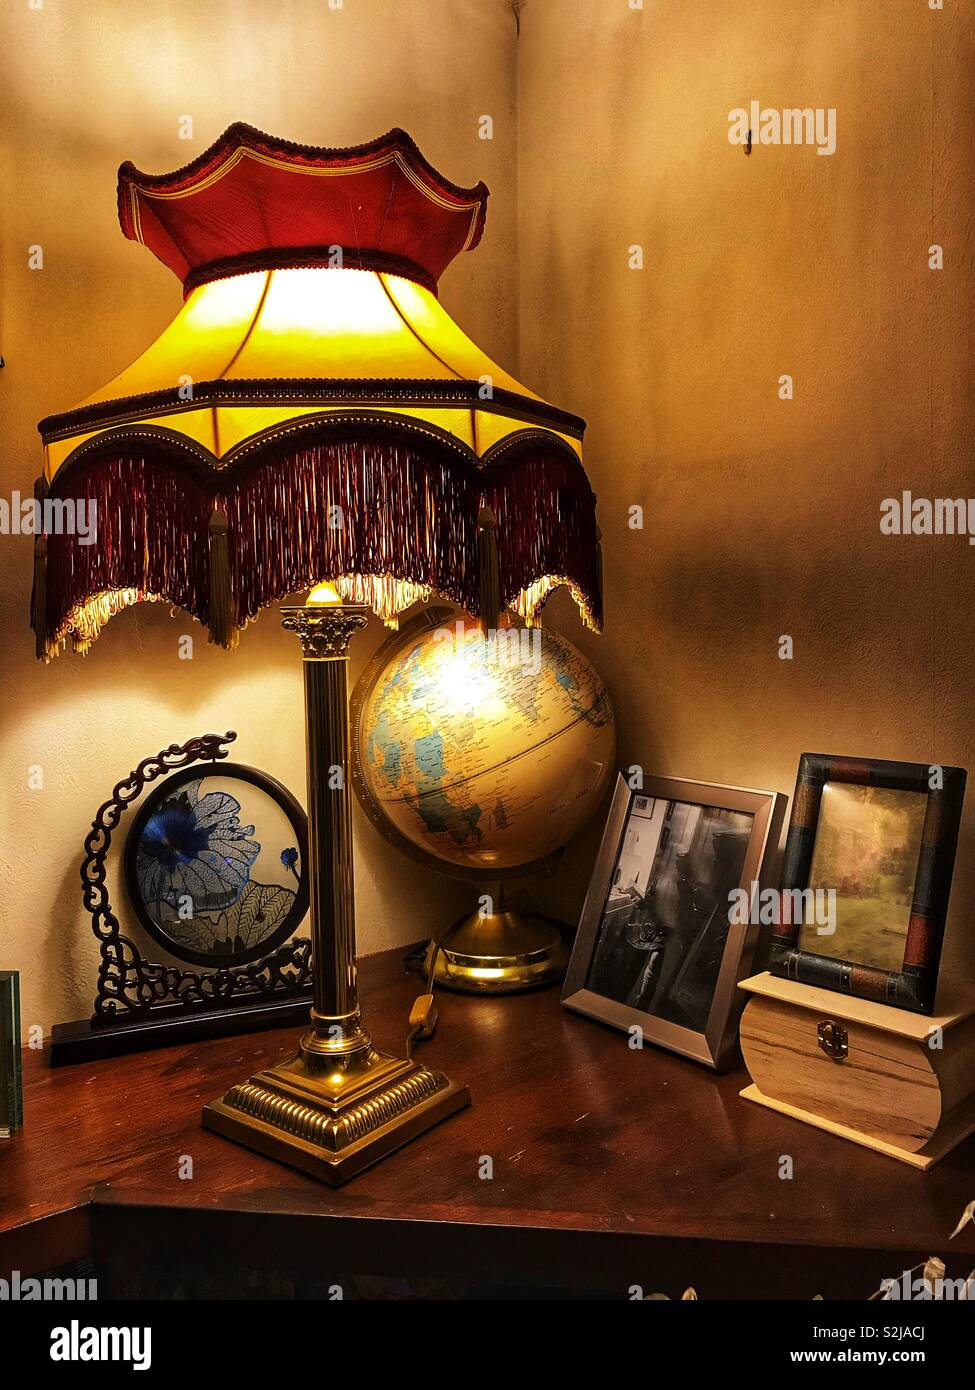 A lamp, family photos and a globe on a ledge in a corner of a room. - Stock Image